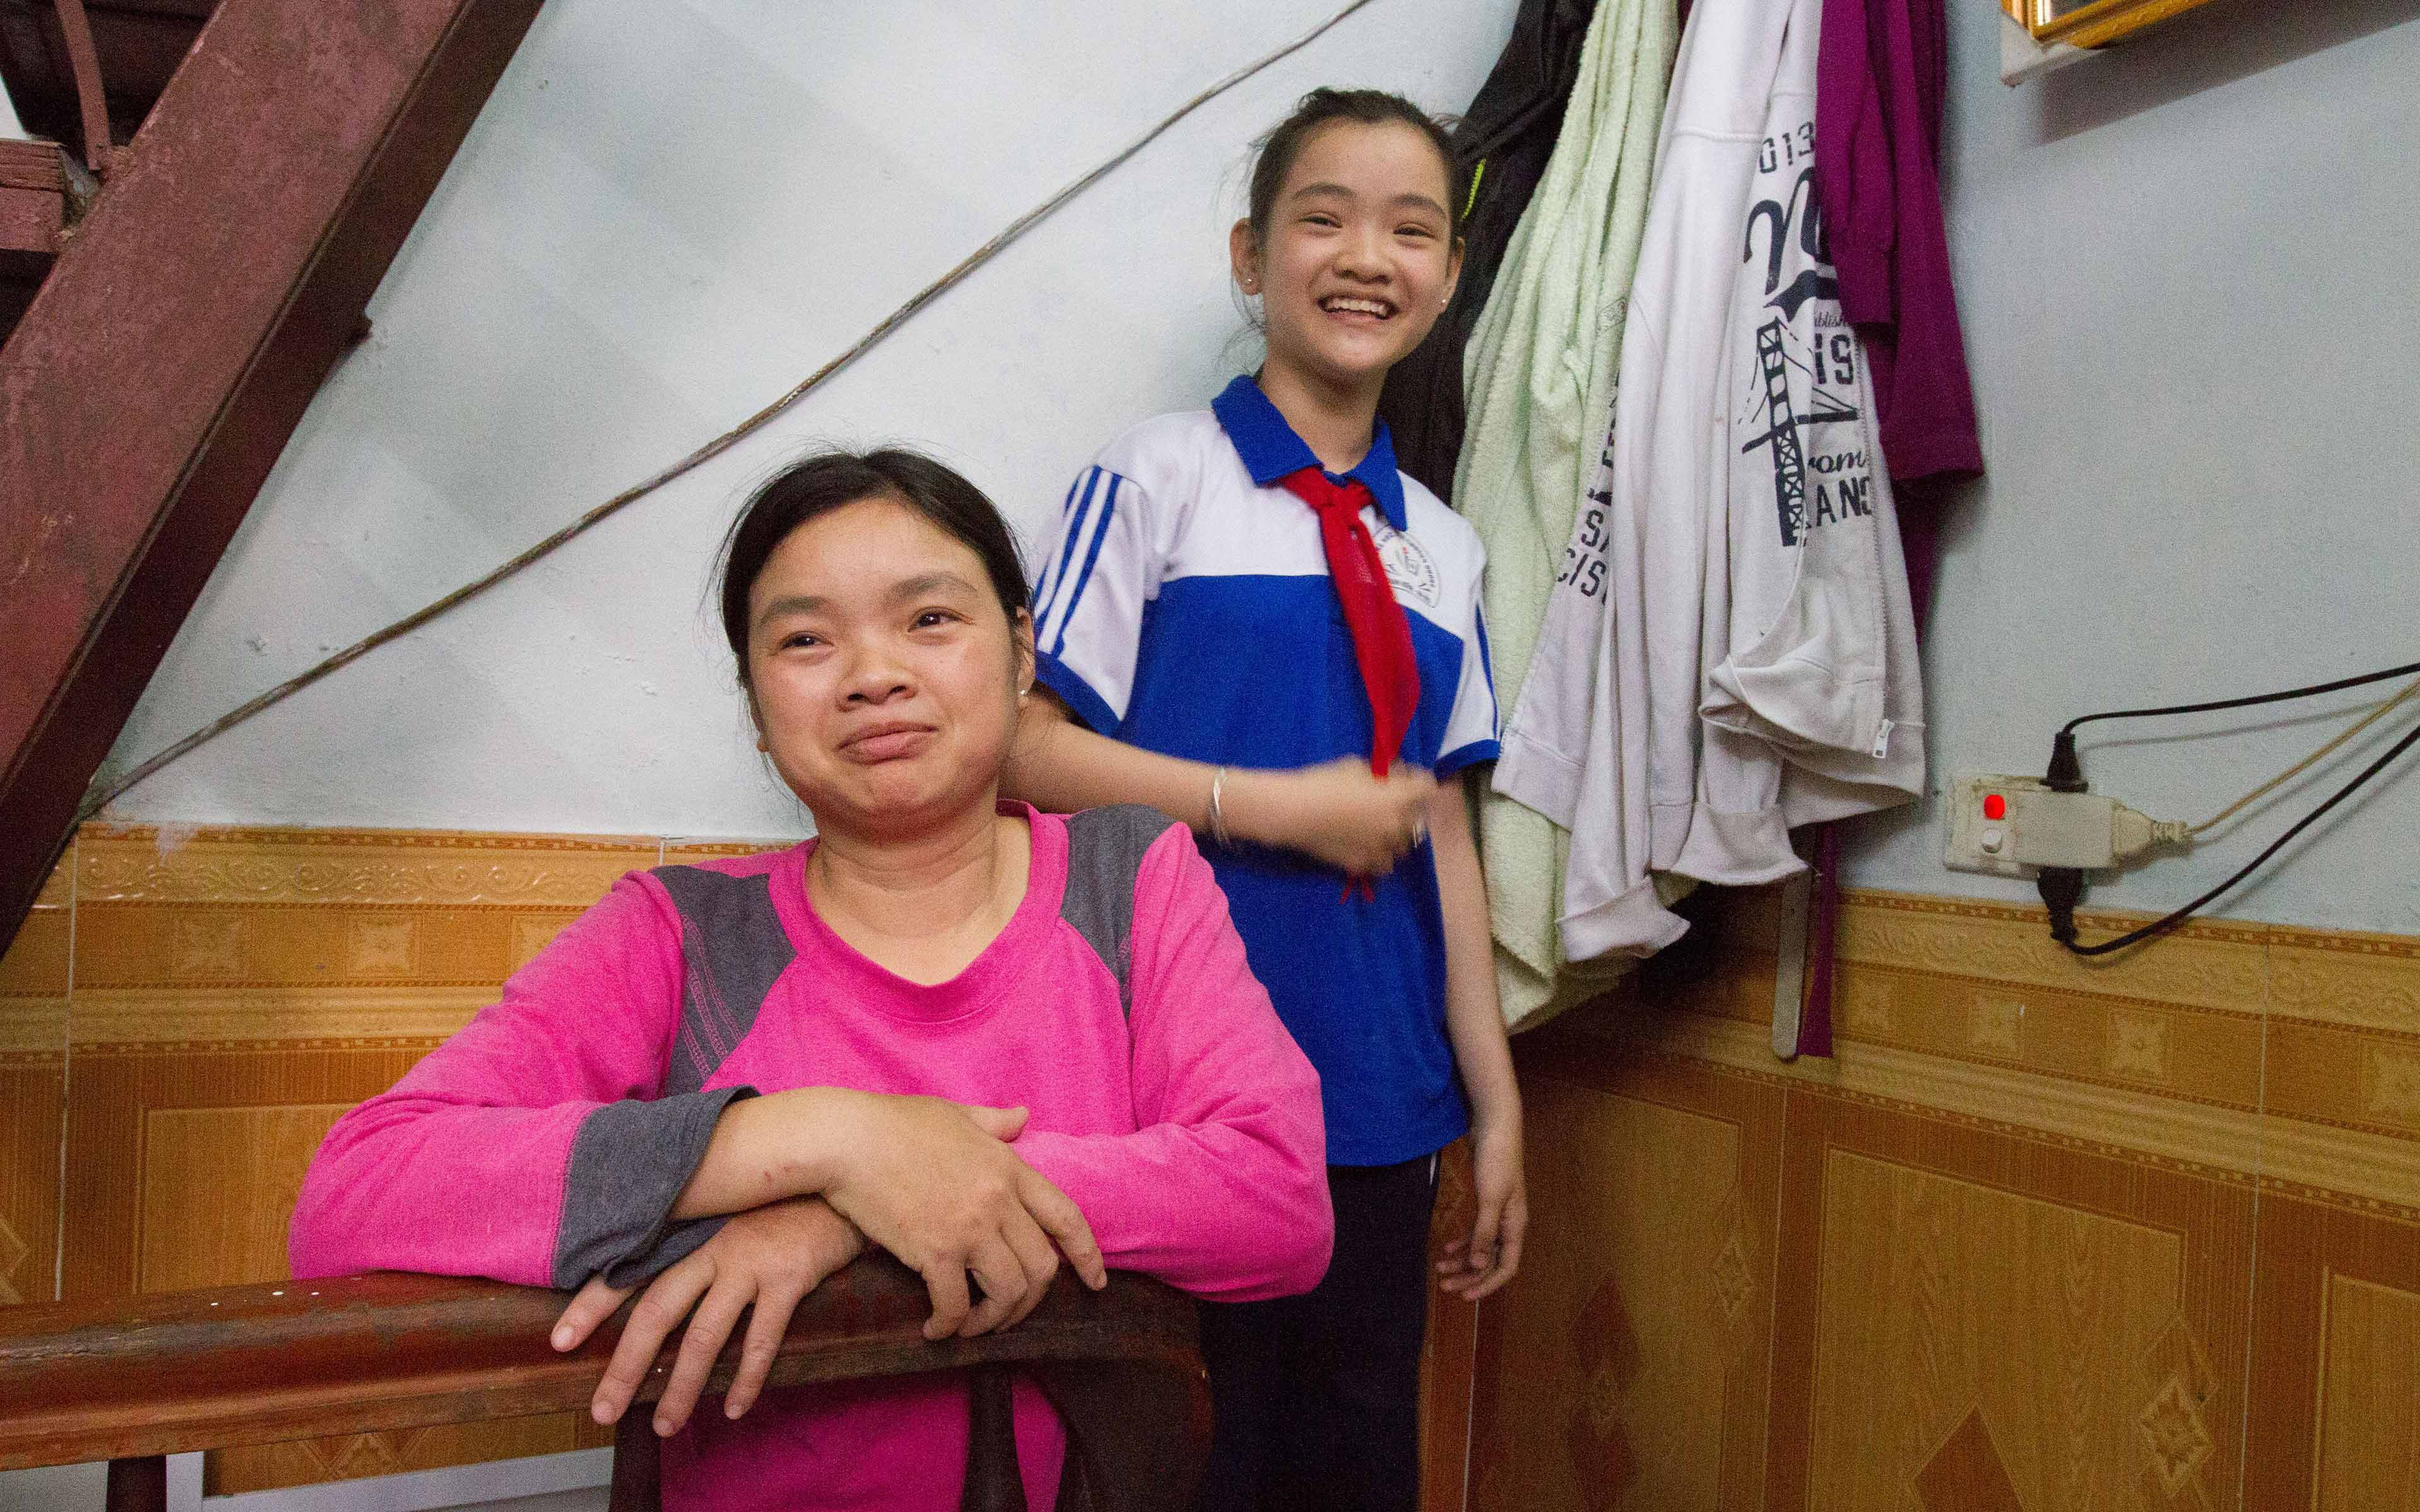 Phạm Thị Hậu and her daughter, Phạm Thảo Linh, in their home. She and her daughter moved to Hanoi after her husband died and his family shunned her.